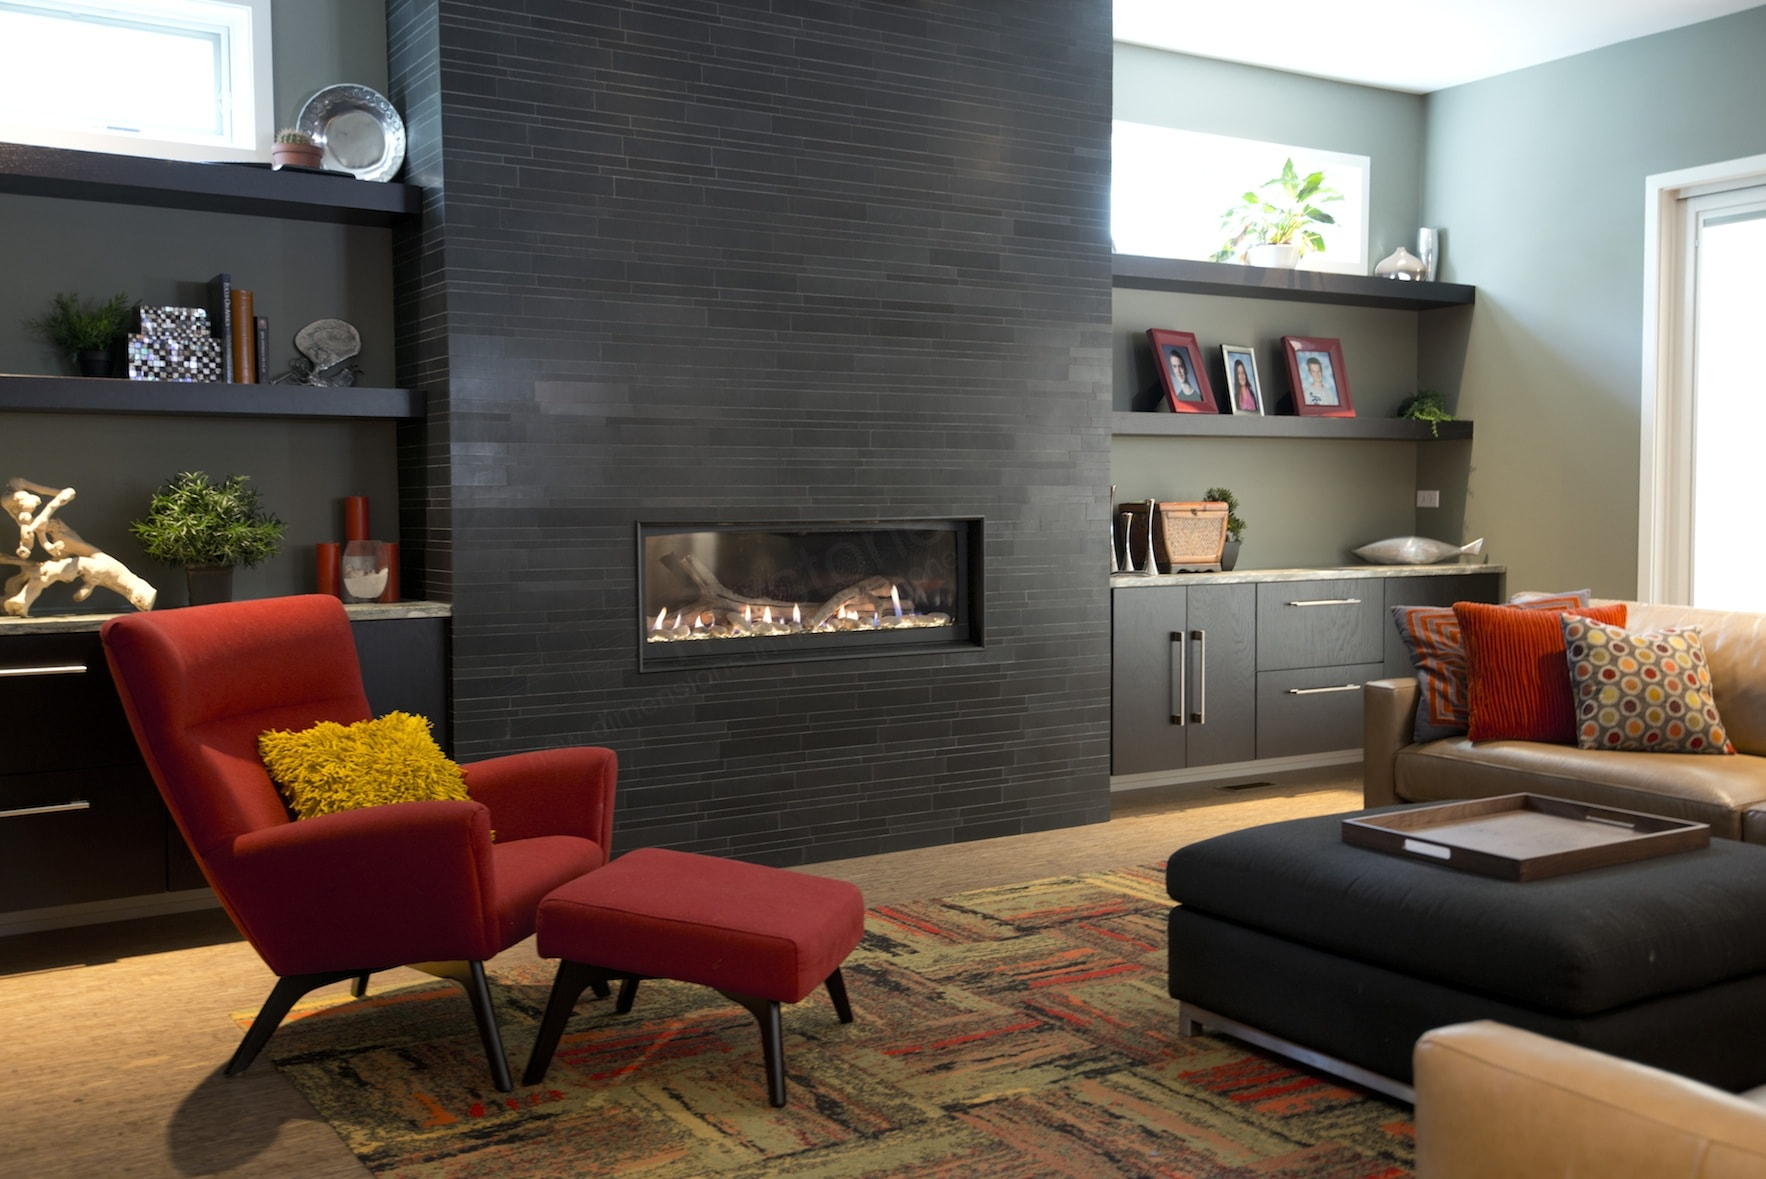 Profile of a modern stone fireplace project in Chicago